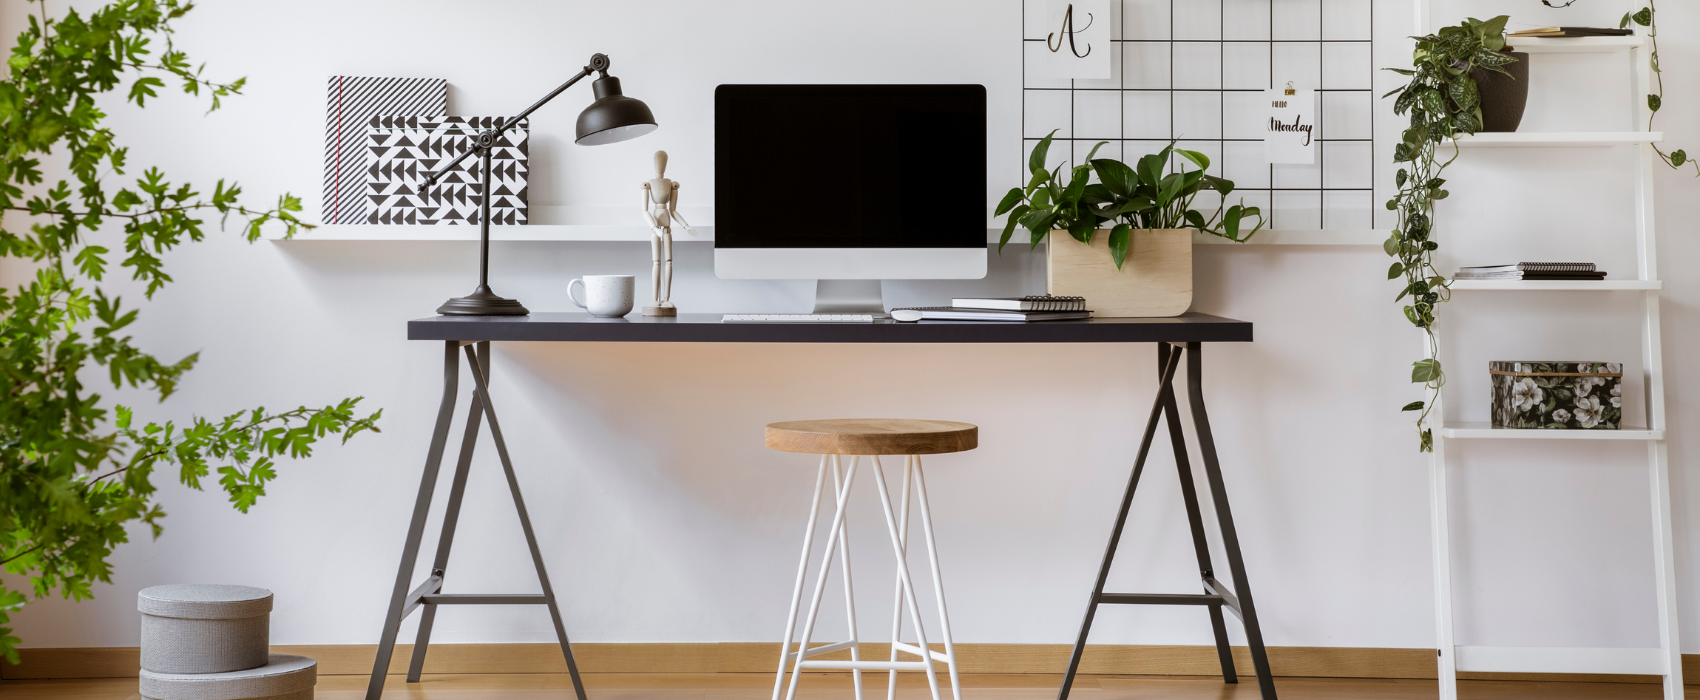 Home Office Trends 2021